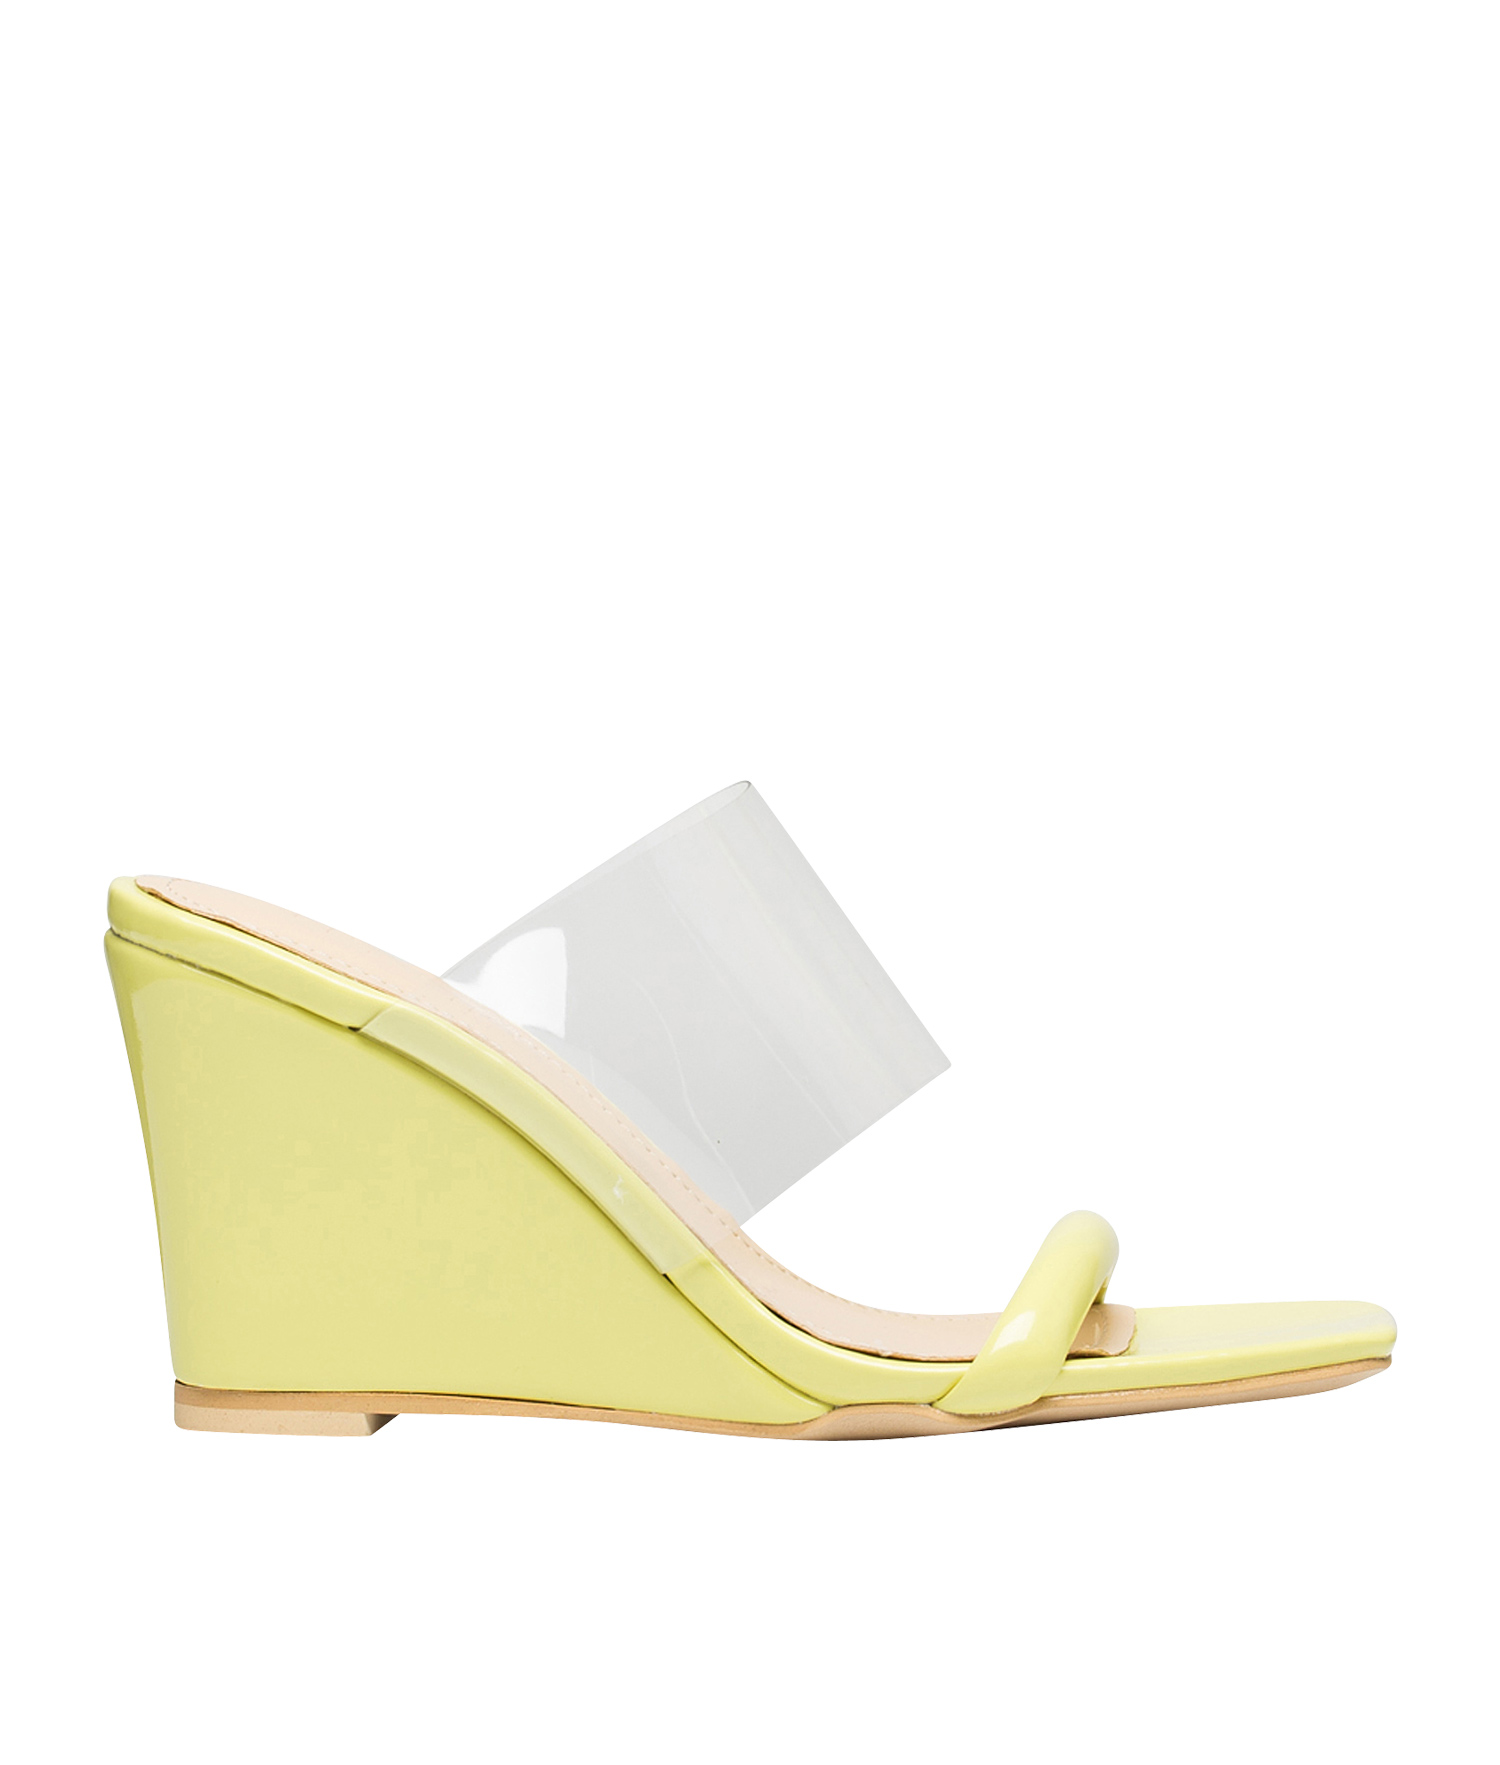 2333bef9b AnnaKastle womens color accent transparent wedge heel mule sandals yellow